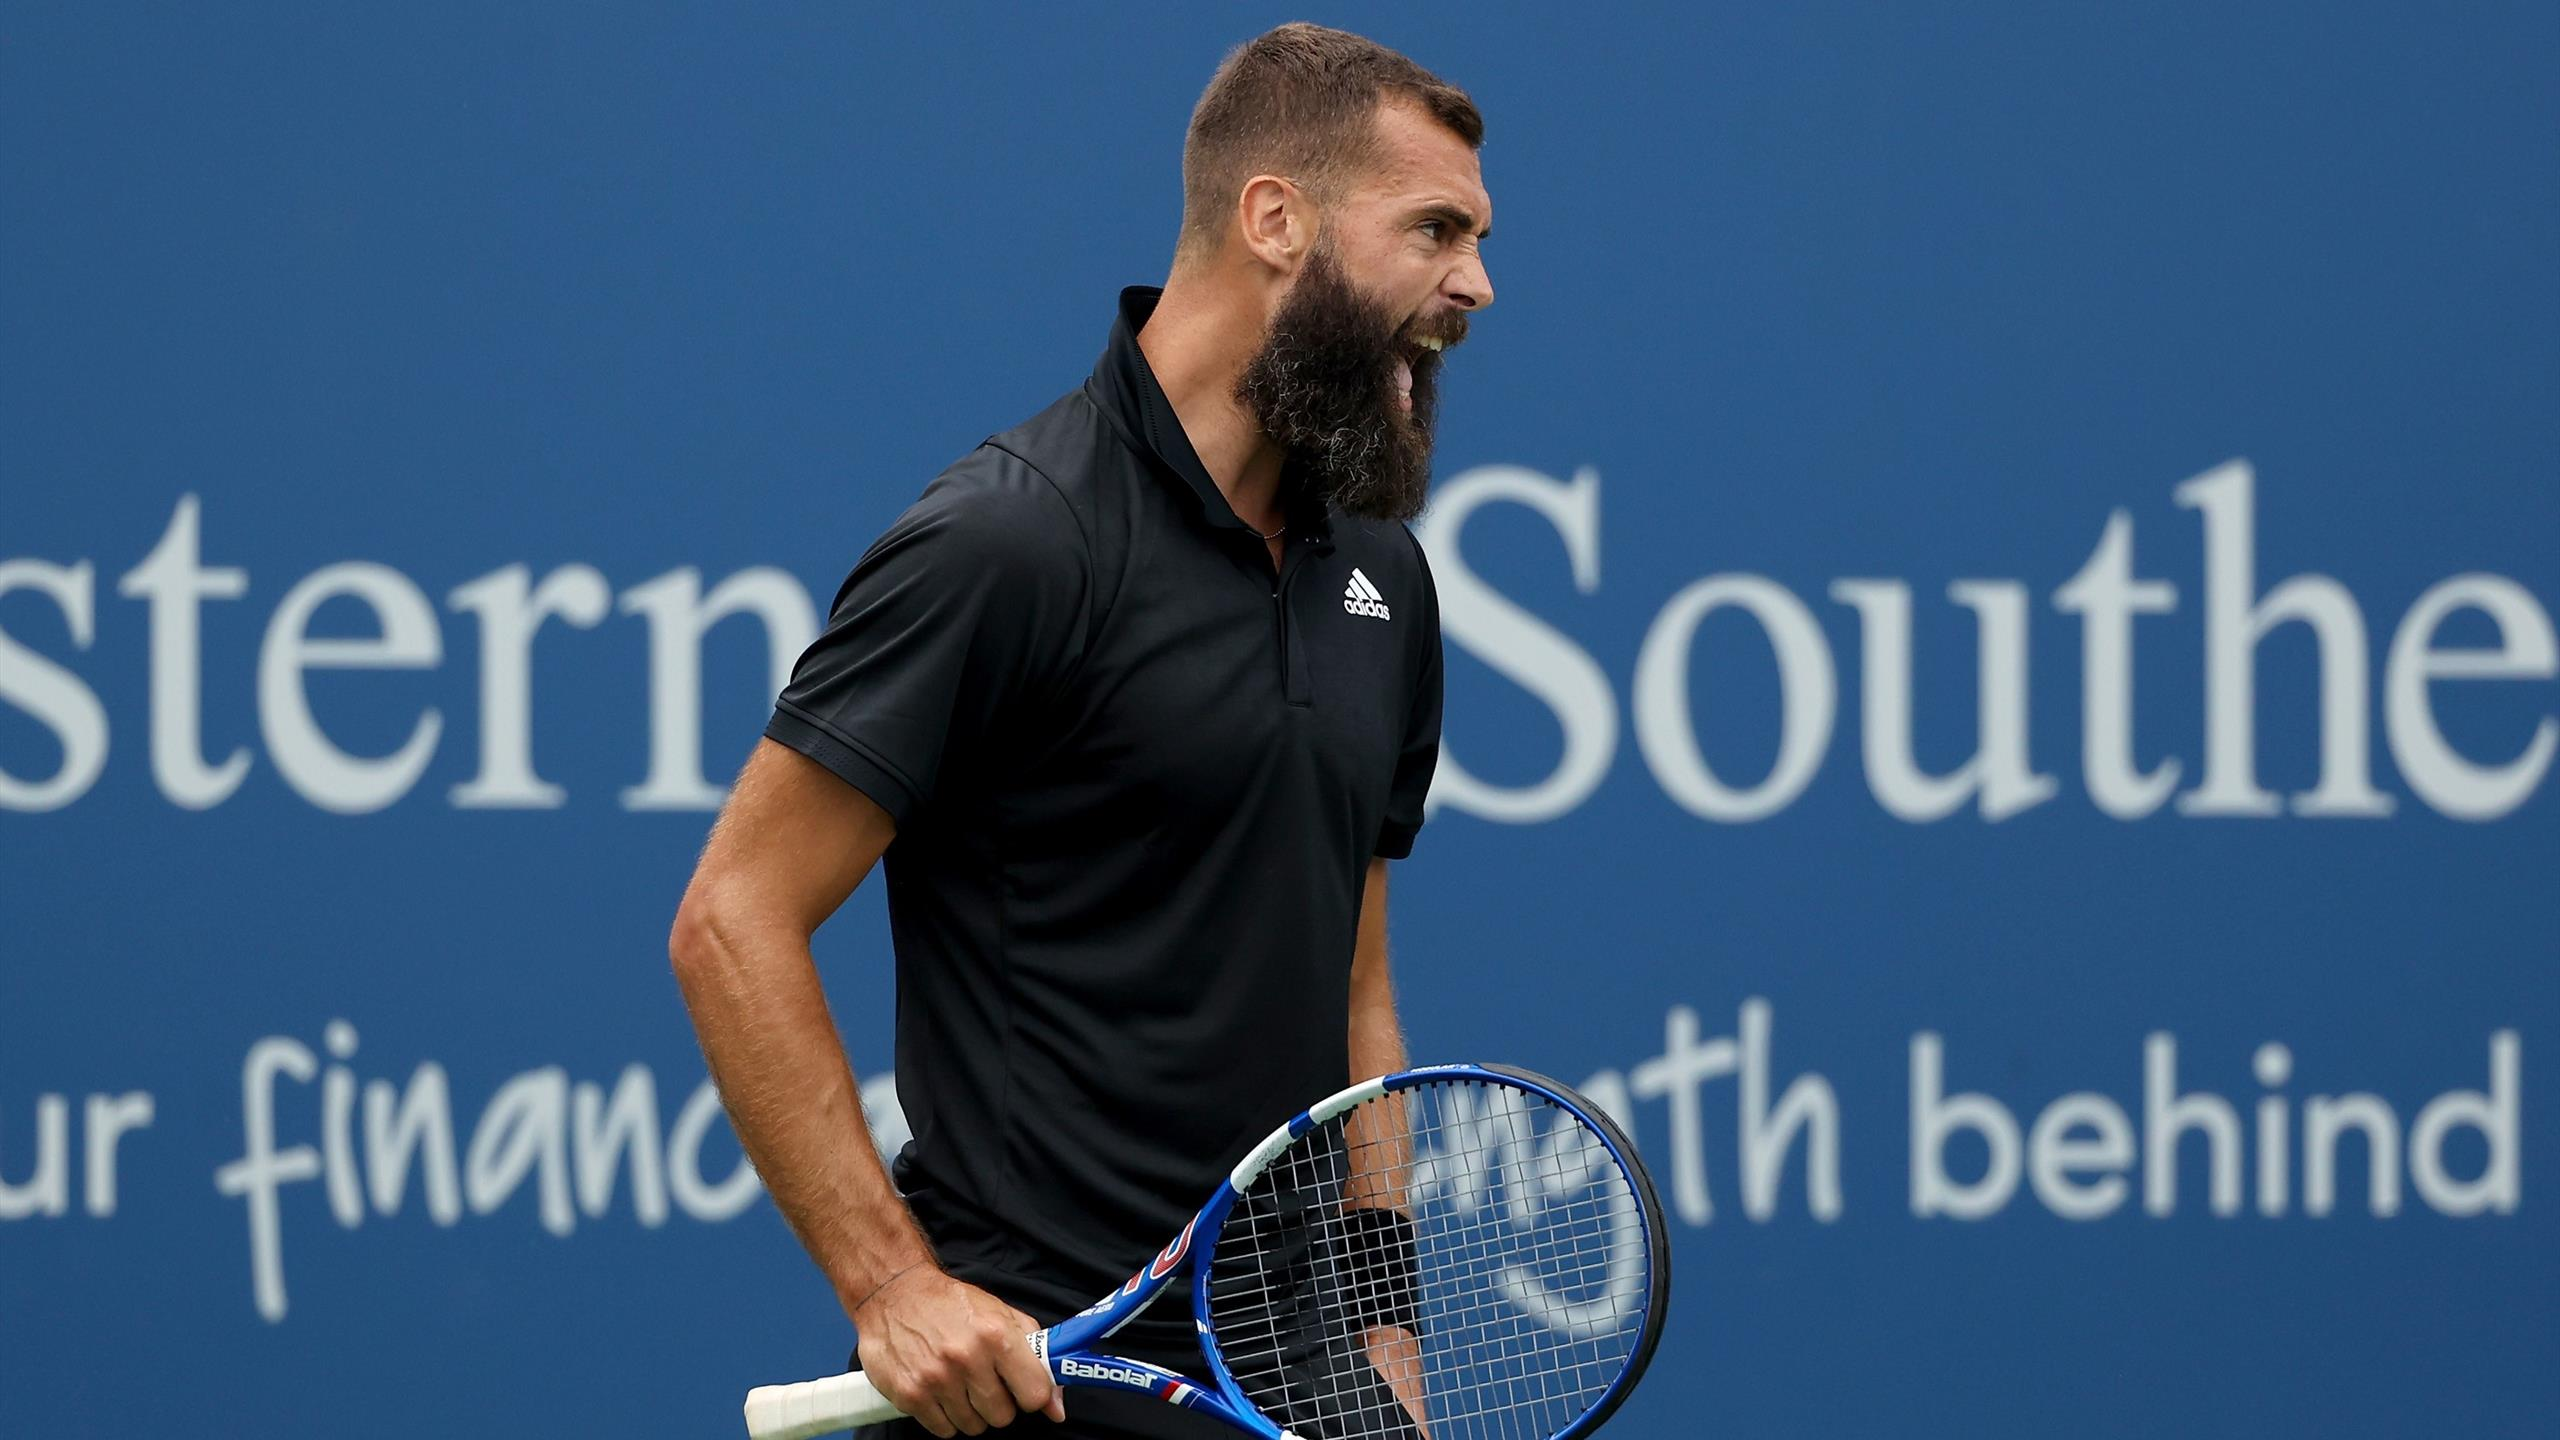 ATP Cincinnati: Isner's downfall Paire to play first Masters 1000 quarterfinals in 8 years